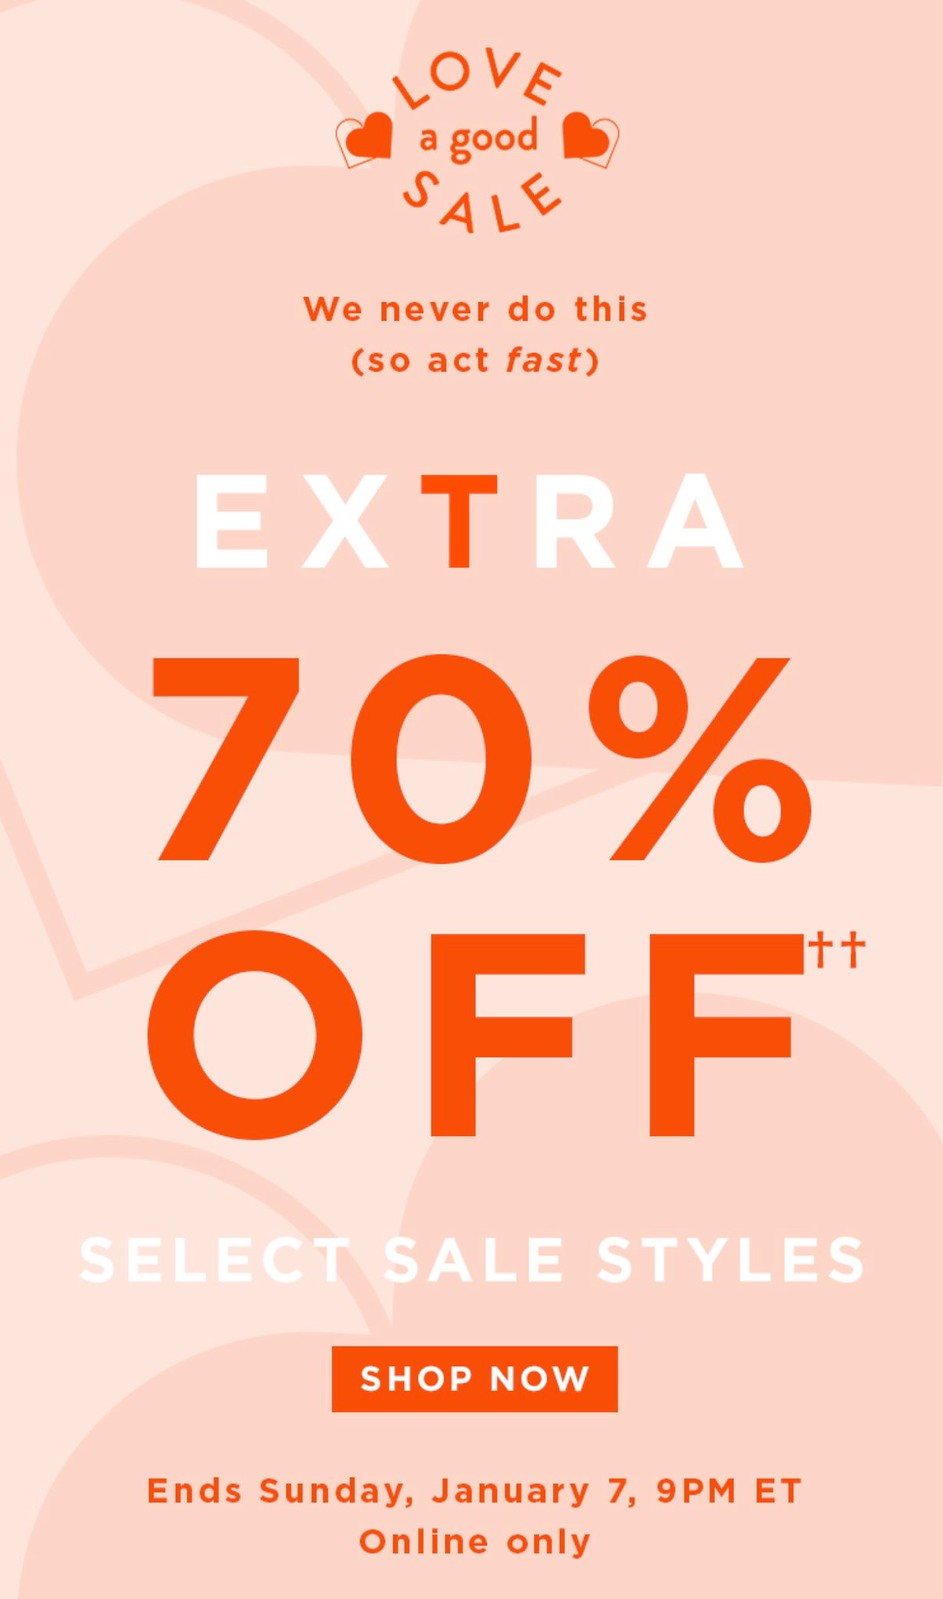 Extra 70% Off Select Sale Styles at LOFT.com